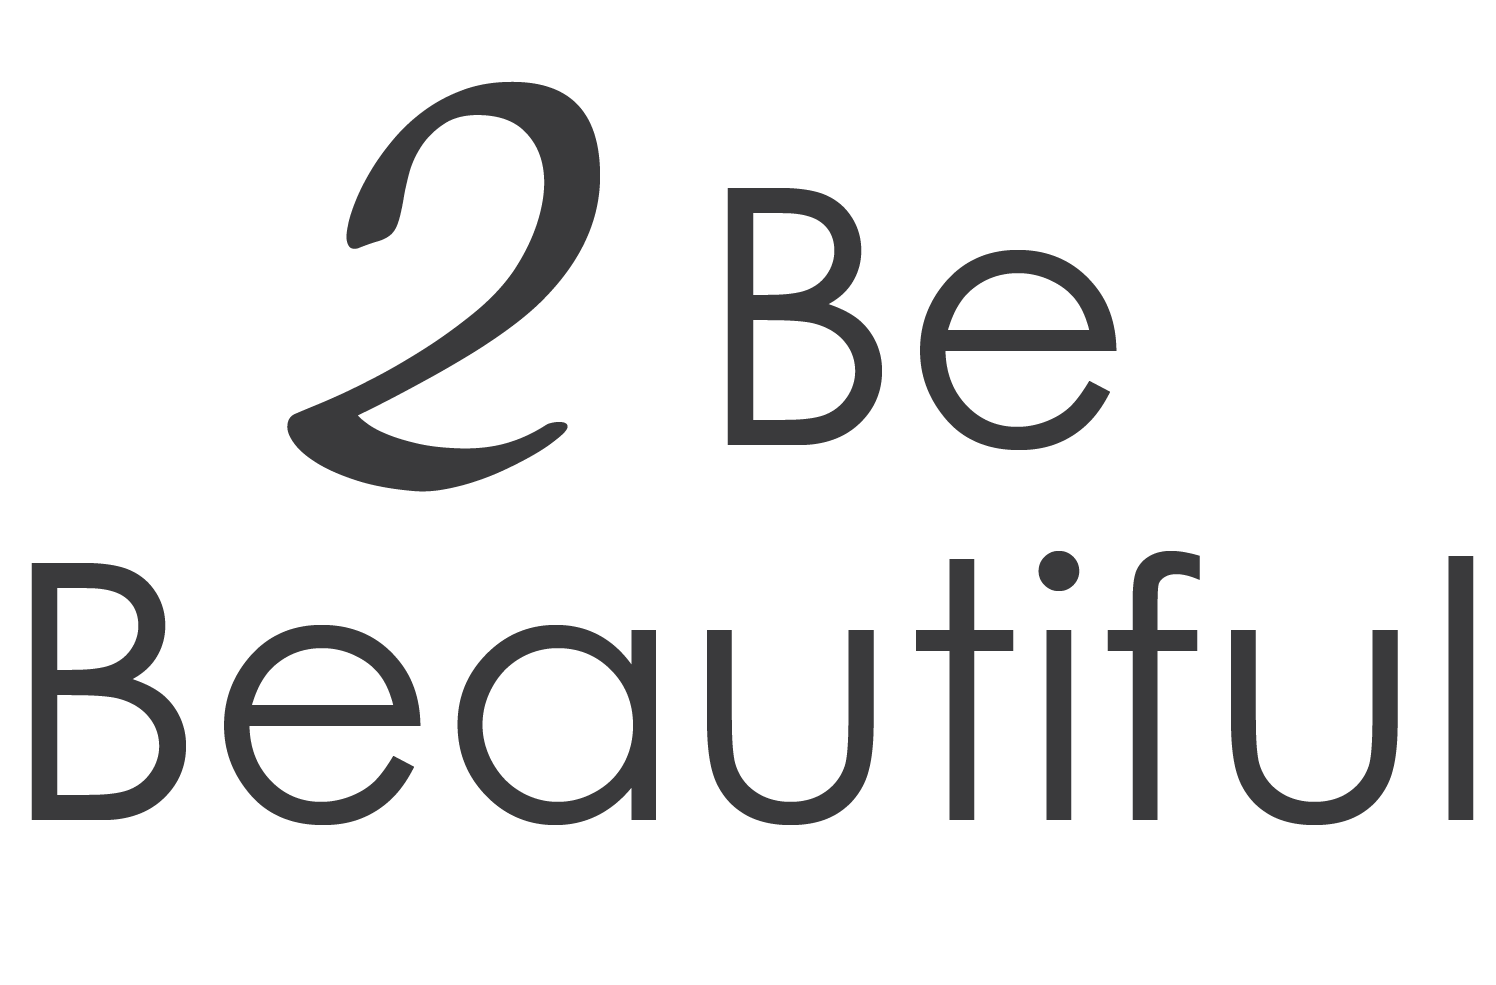 2beBeautiful